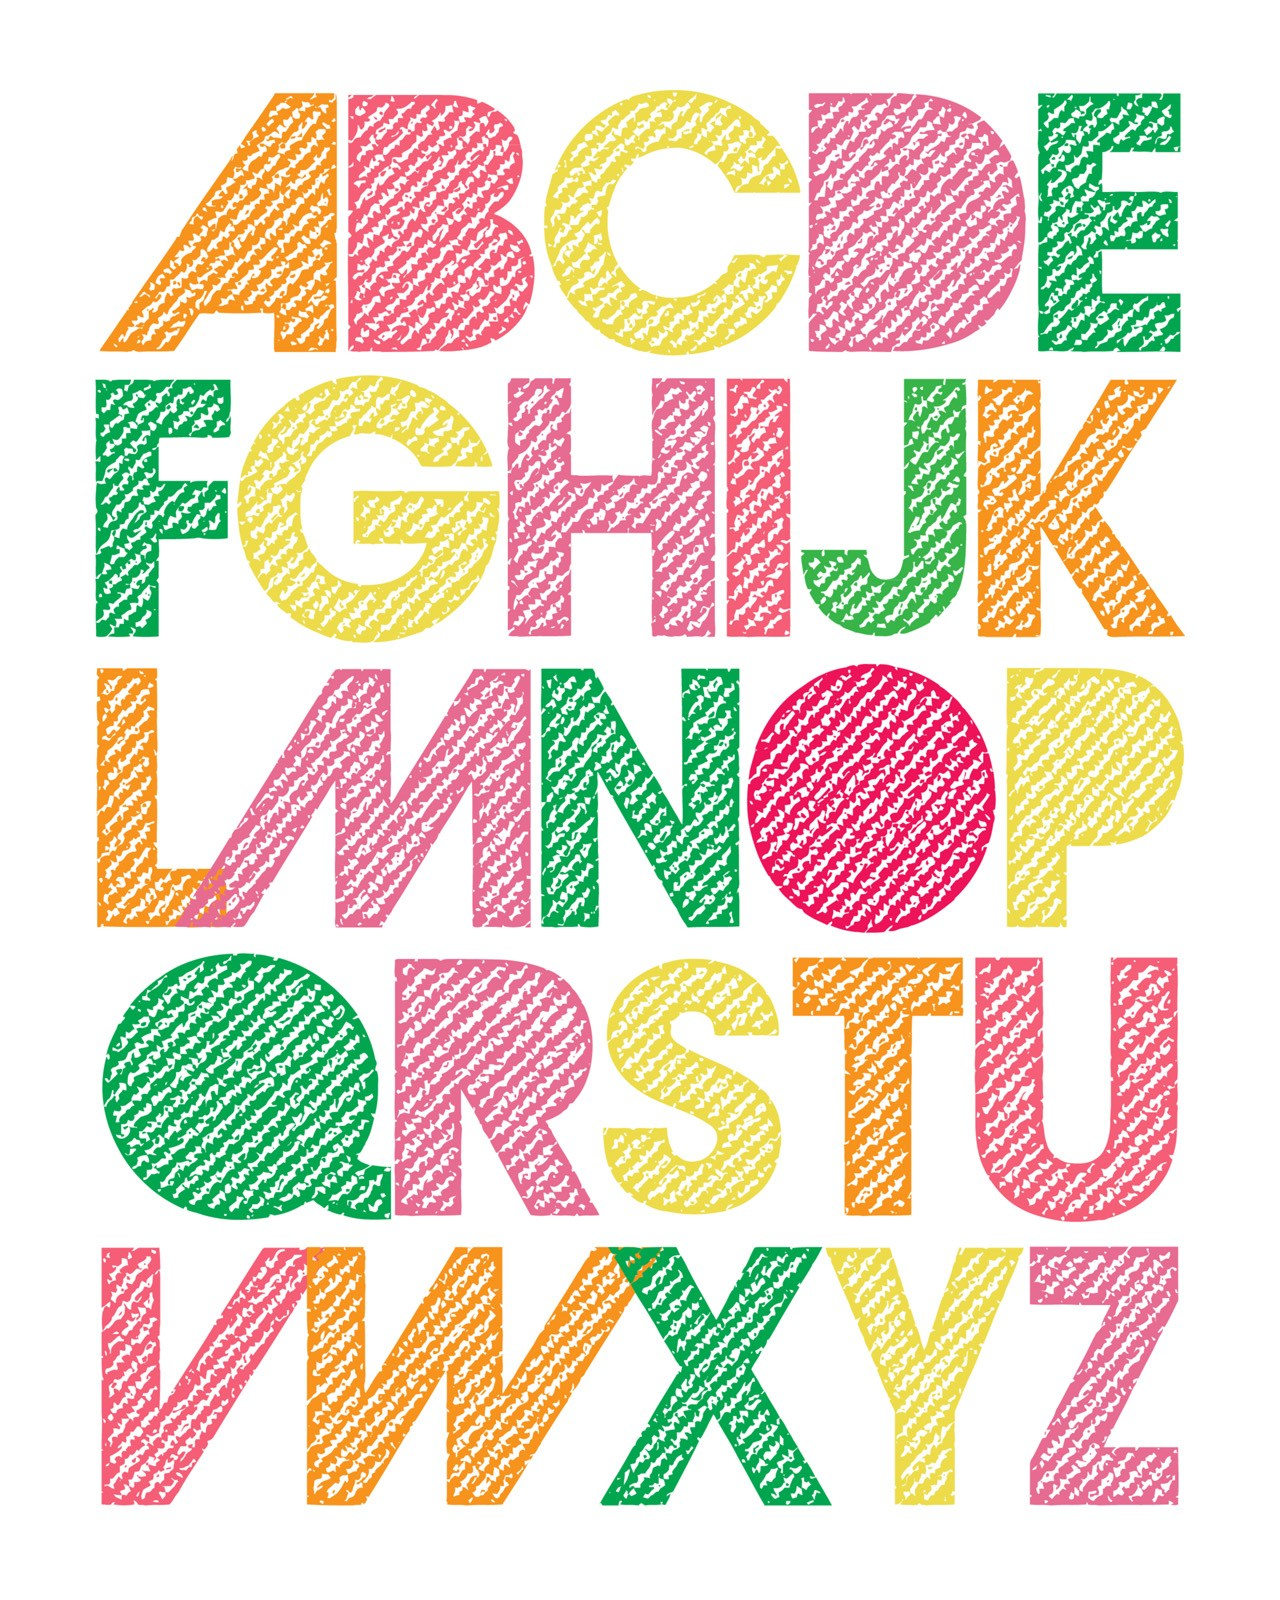 This alphabet printable is so adorable. Would be super cute for an alphabet themed nursery!